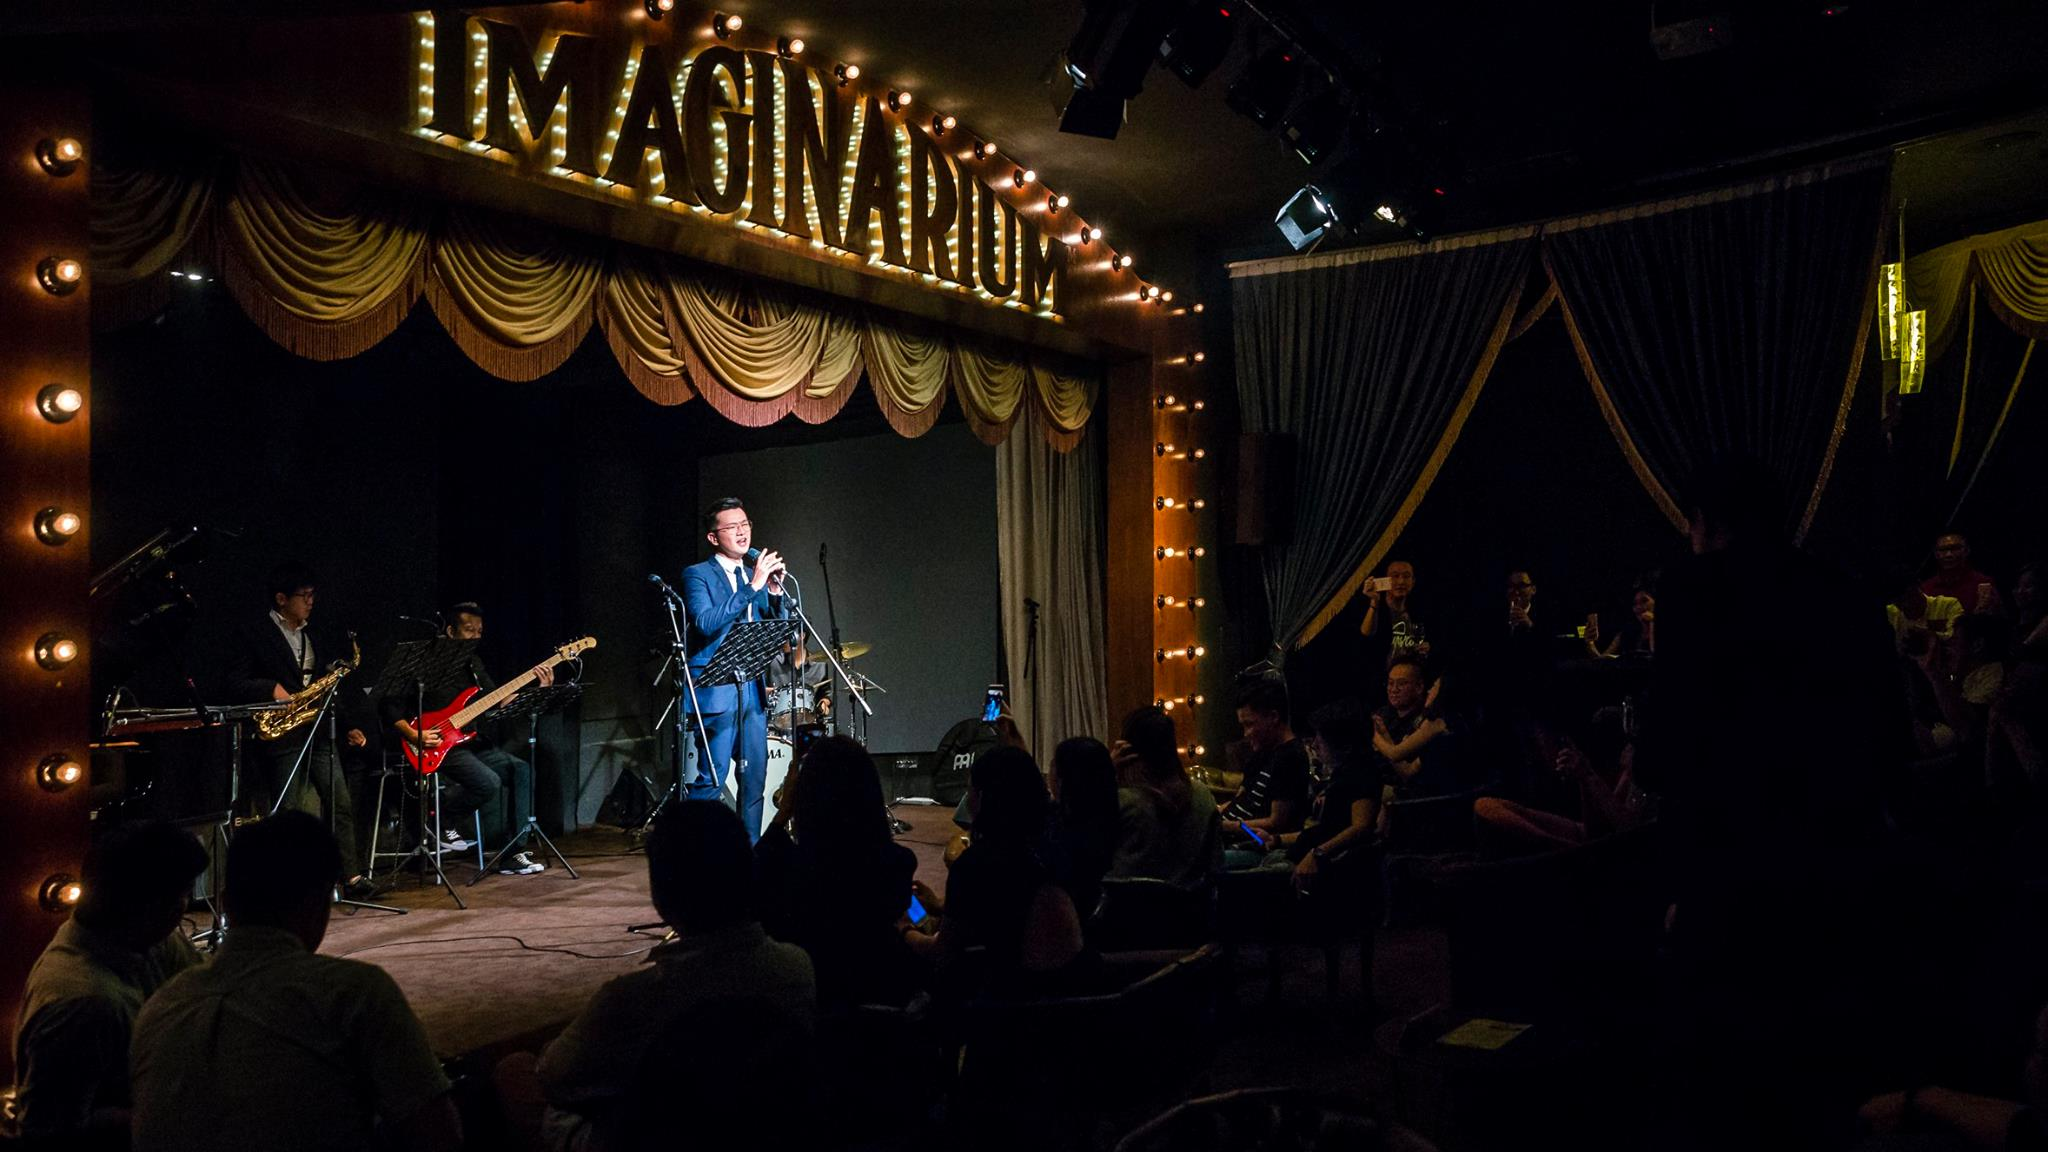 The Imaginarium Jazz Bar 1 Utama Petaling Jaya